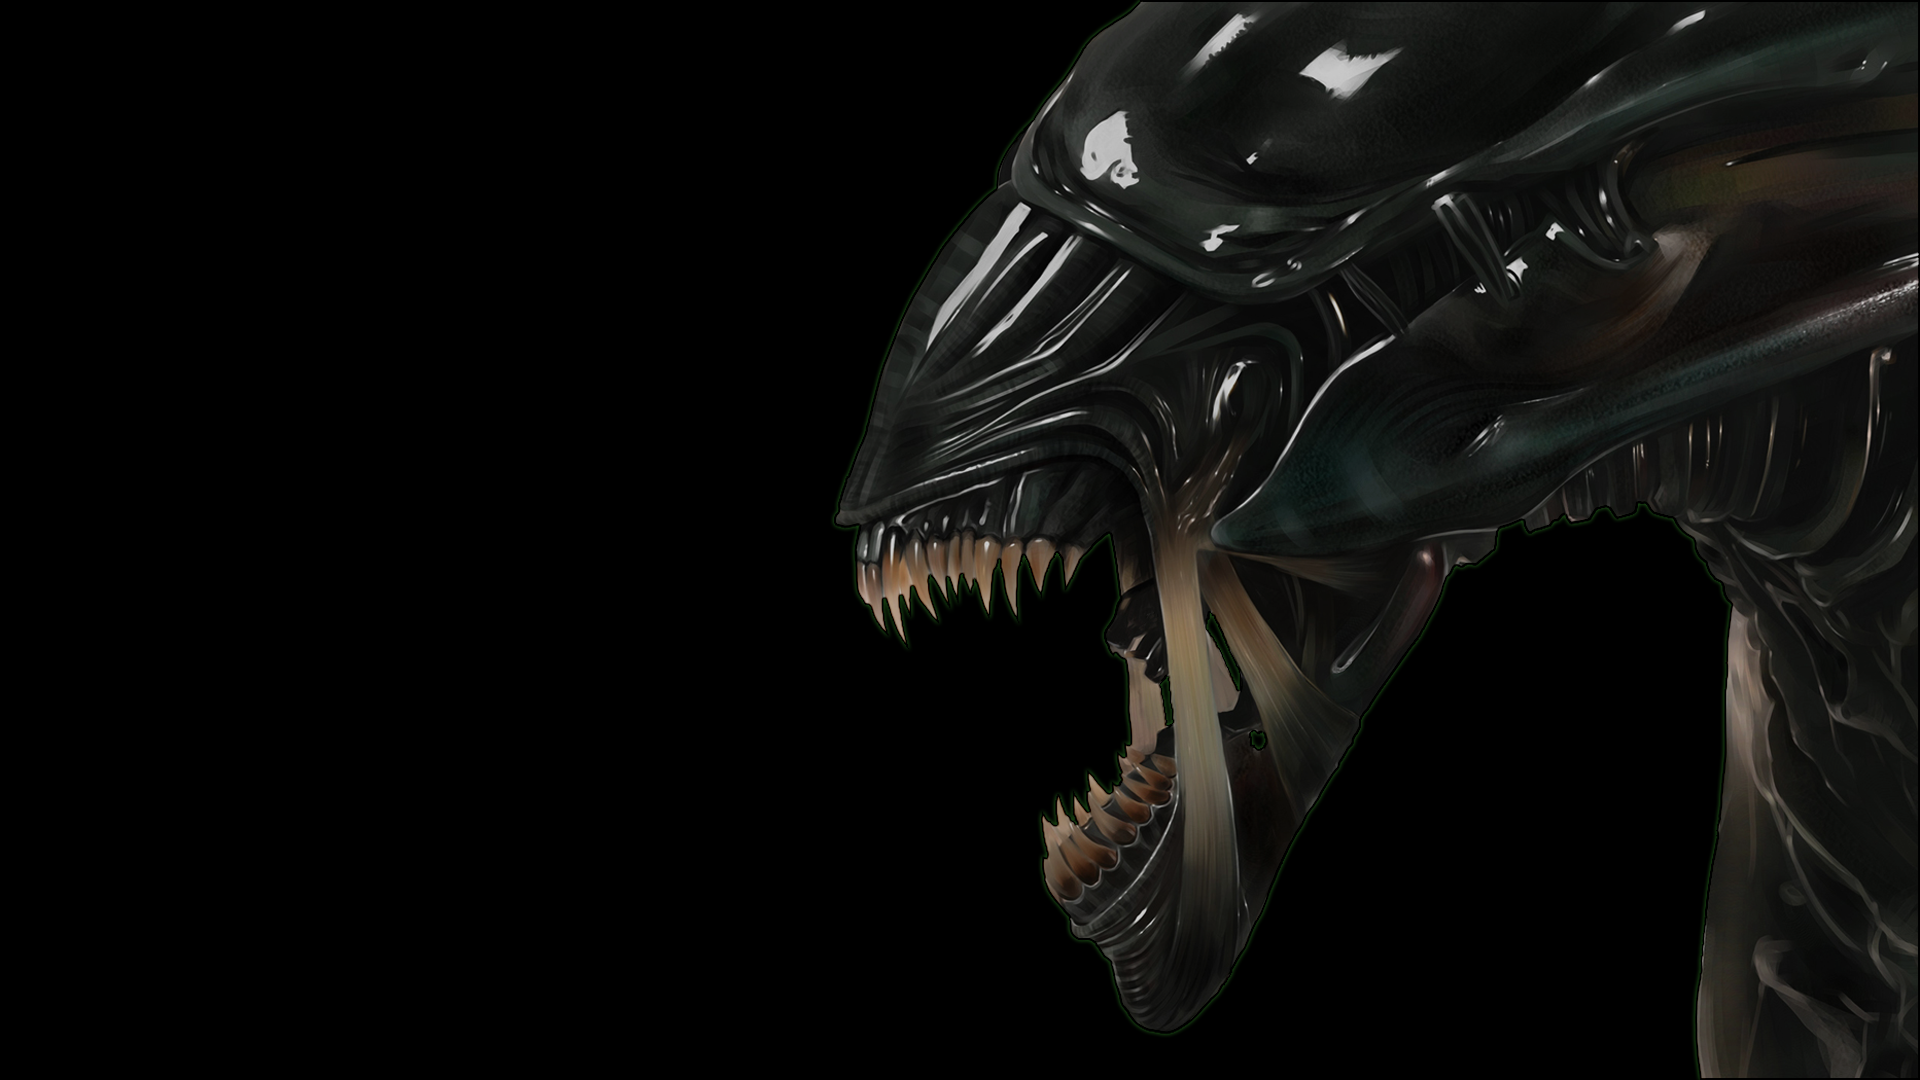 ALIENS HD Wallpapers Pictures Hd Wallpapers 1920x1080